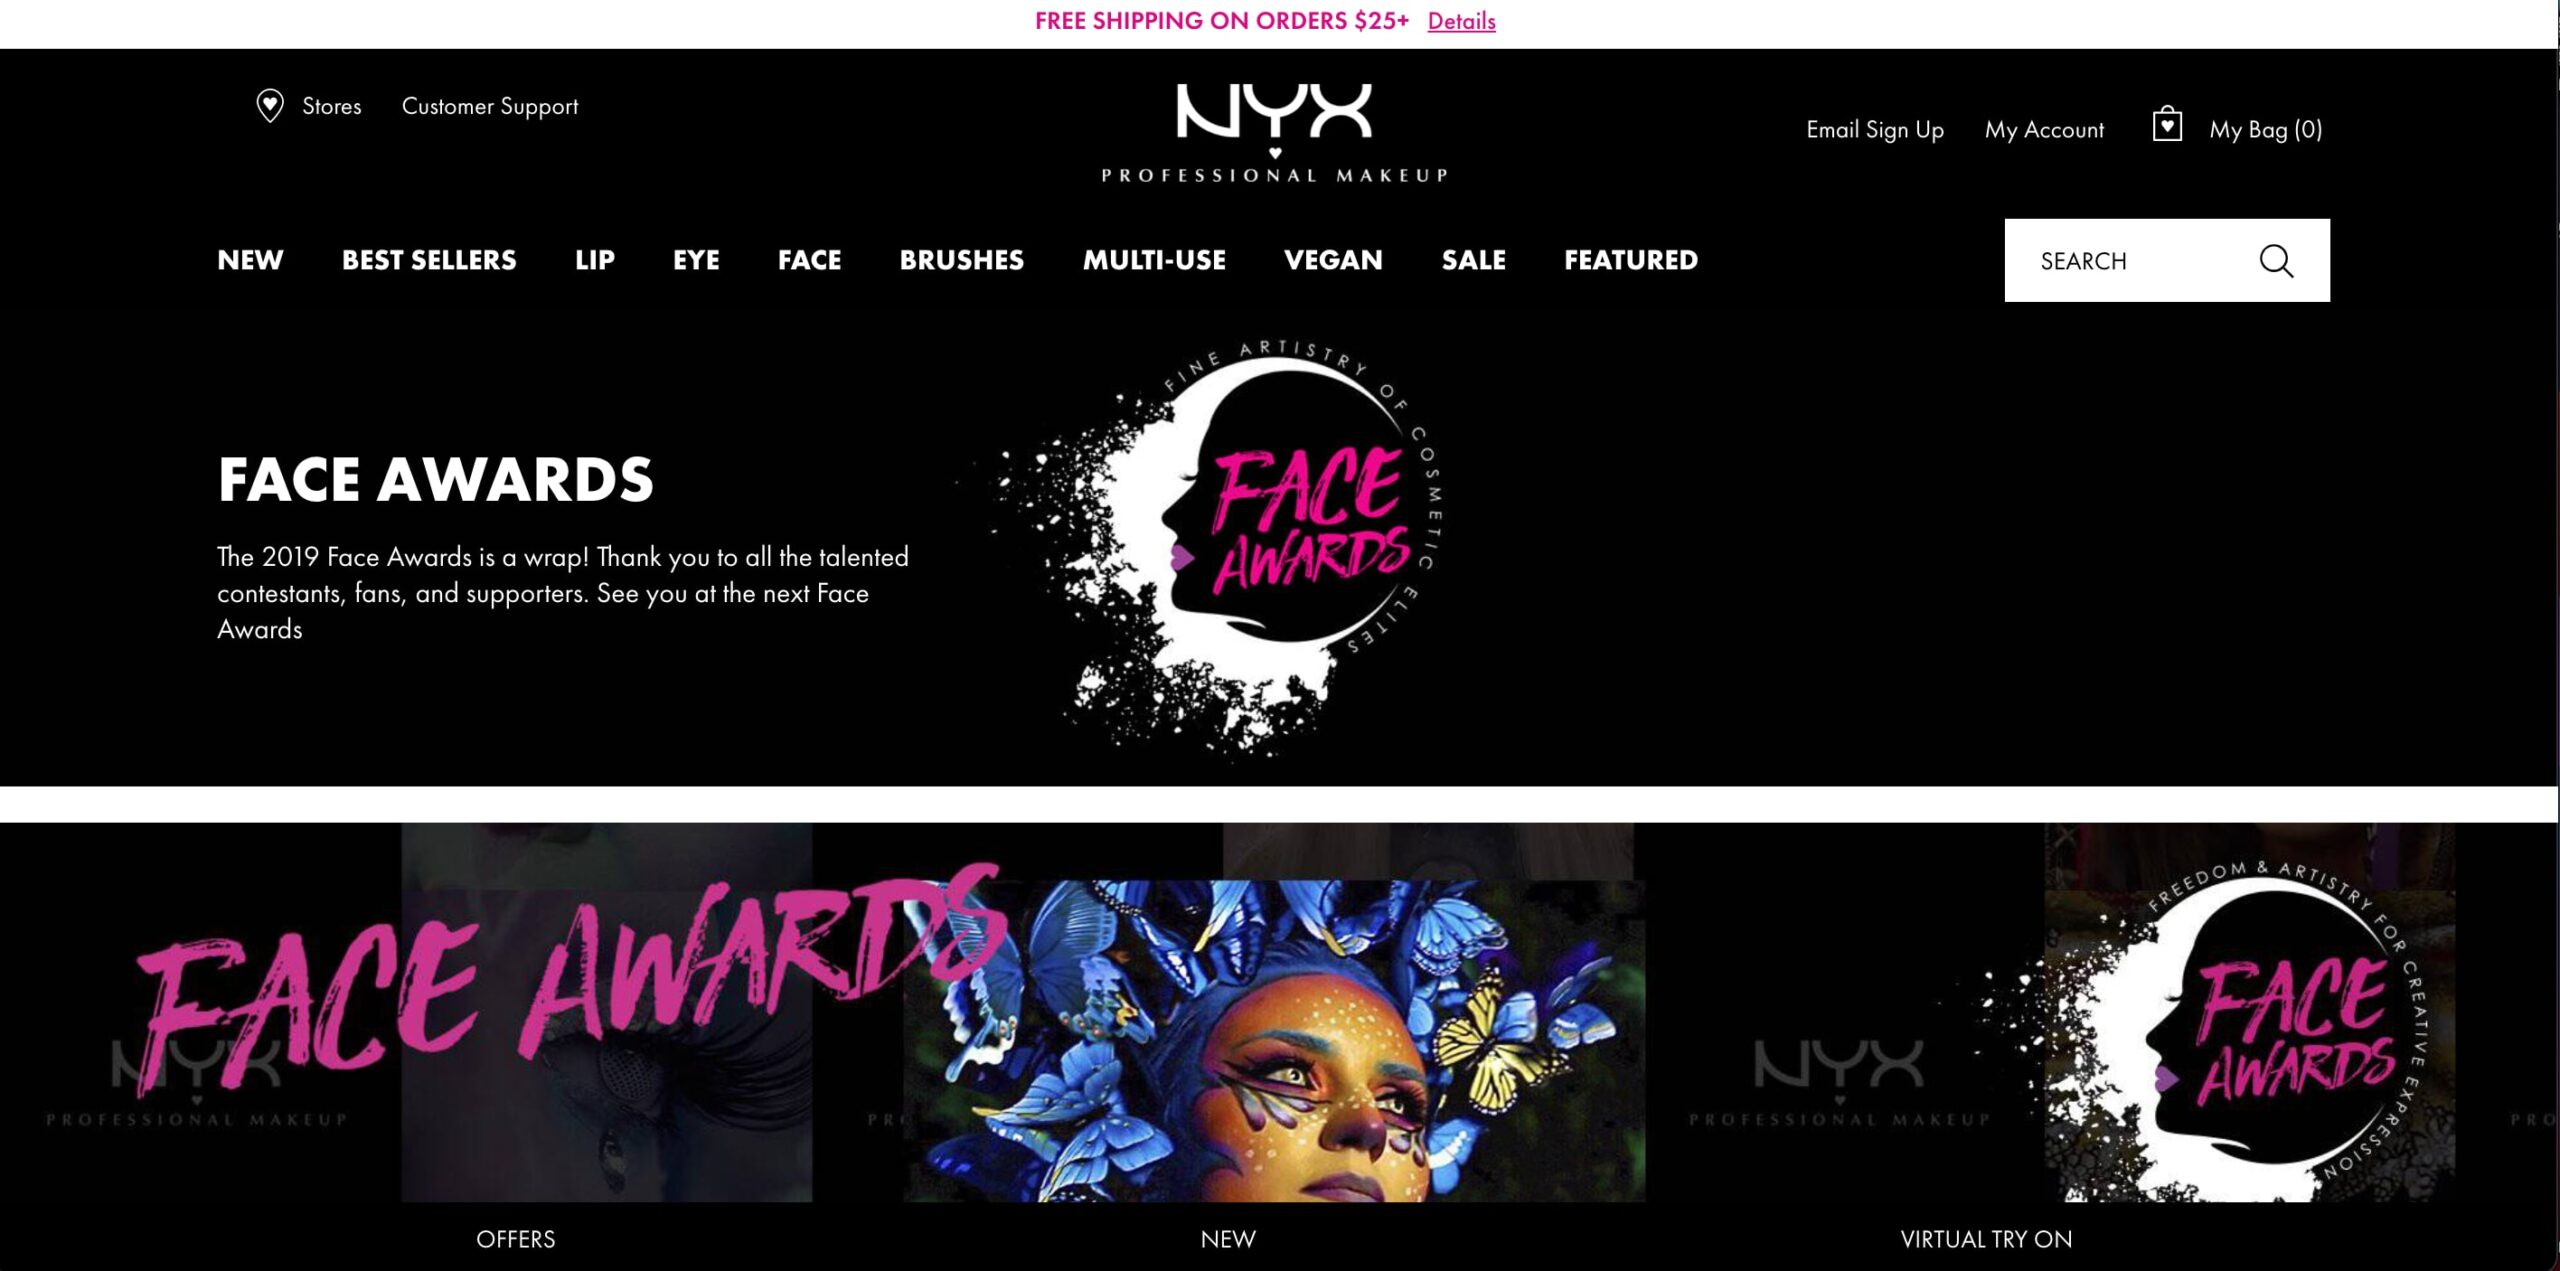 digital marketing strategies for beauty brand: Face Award